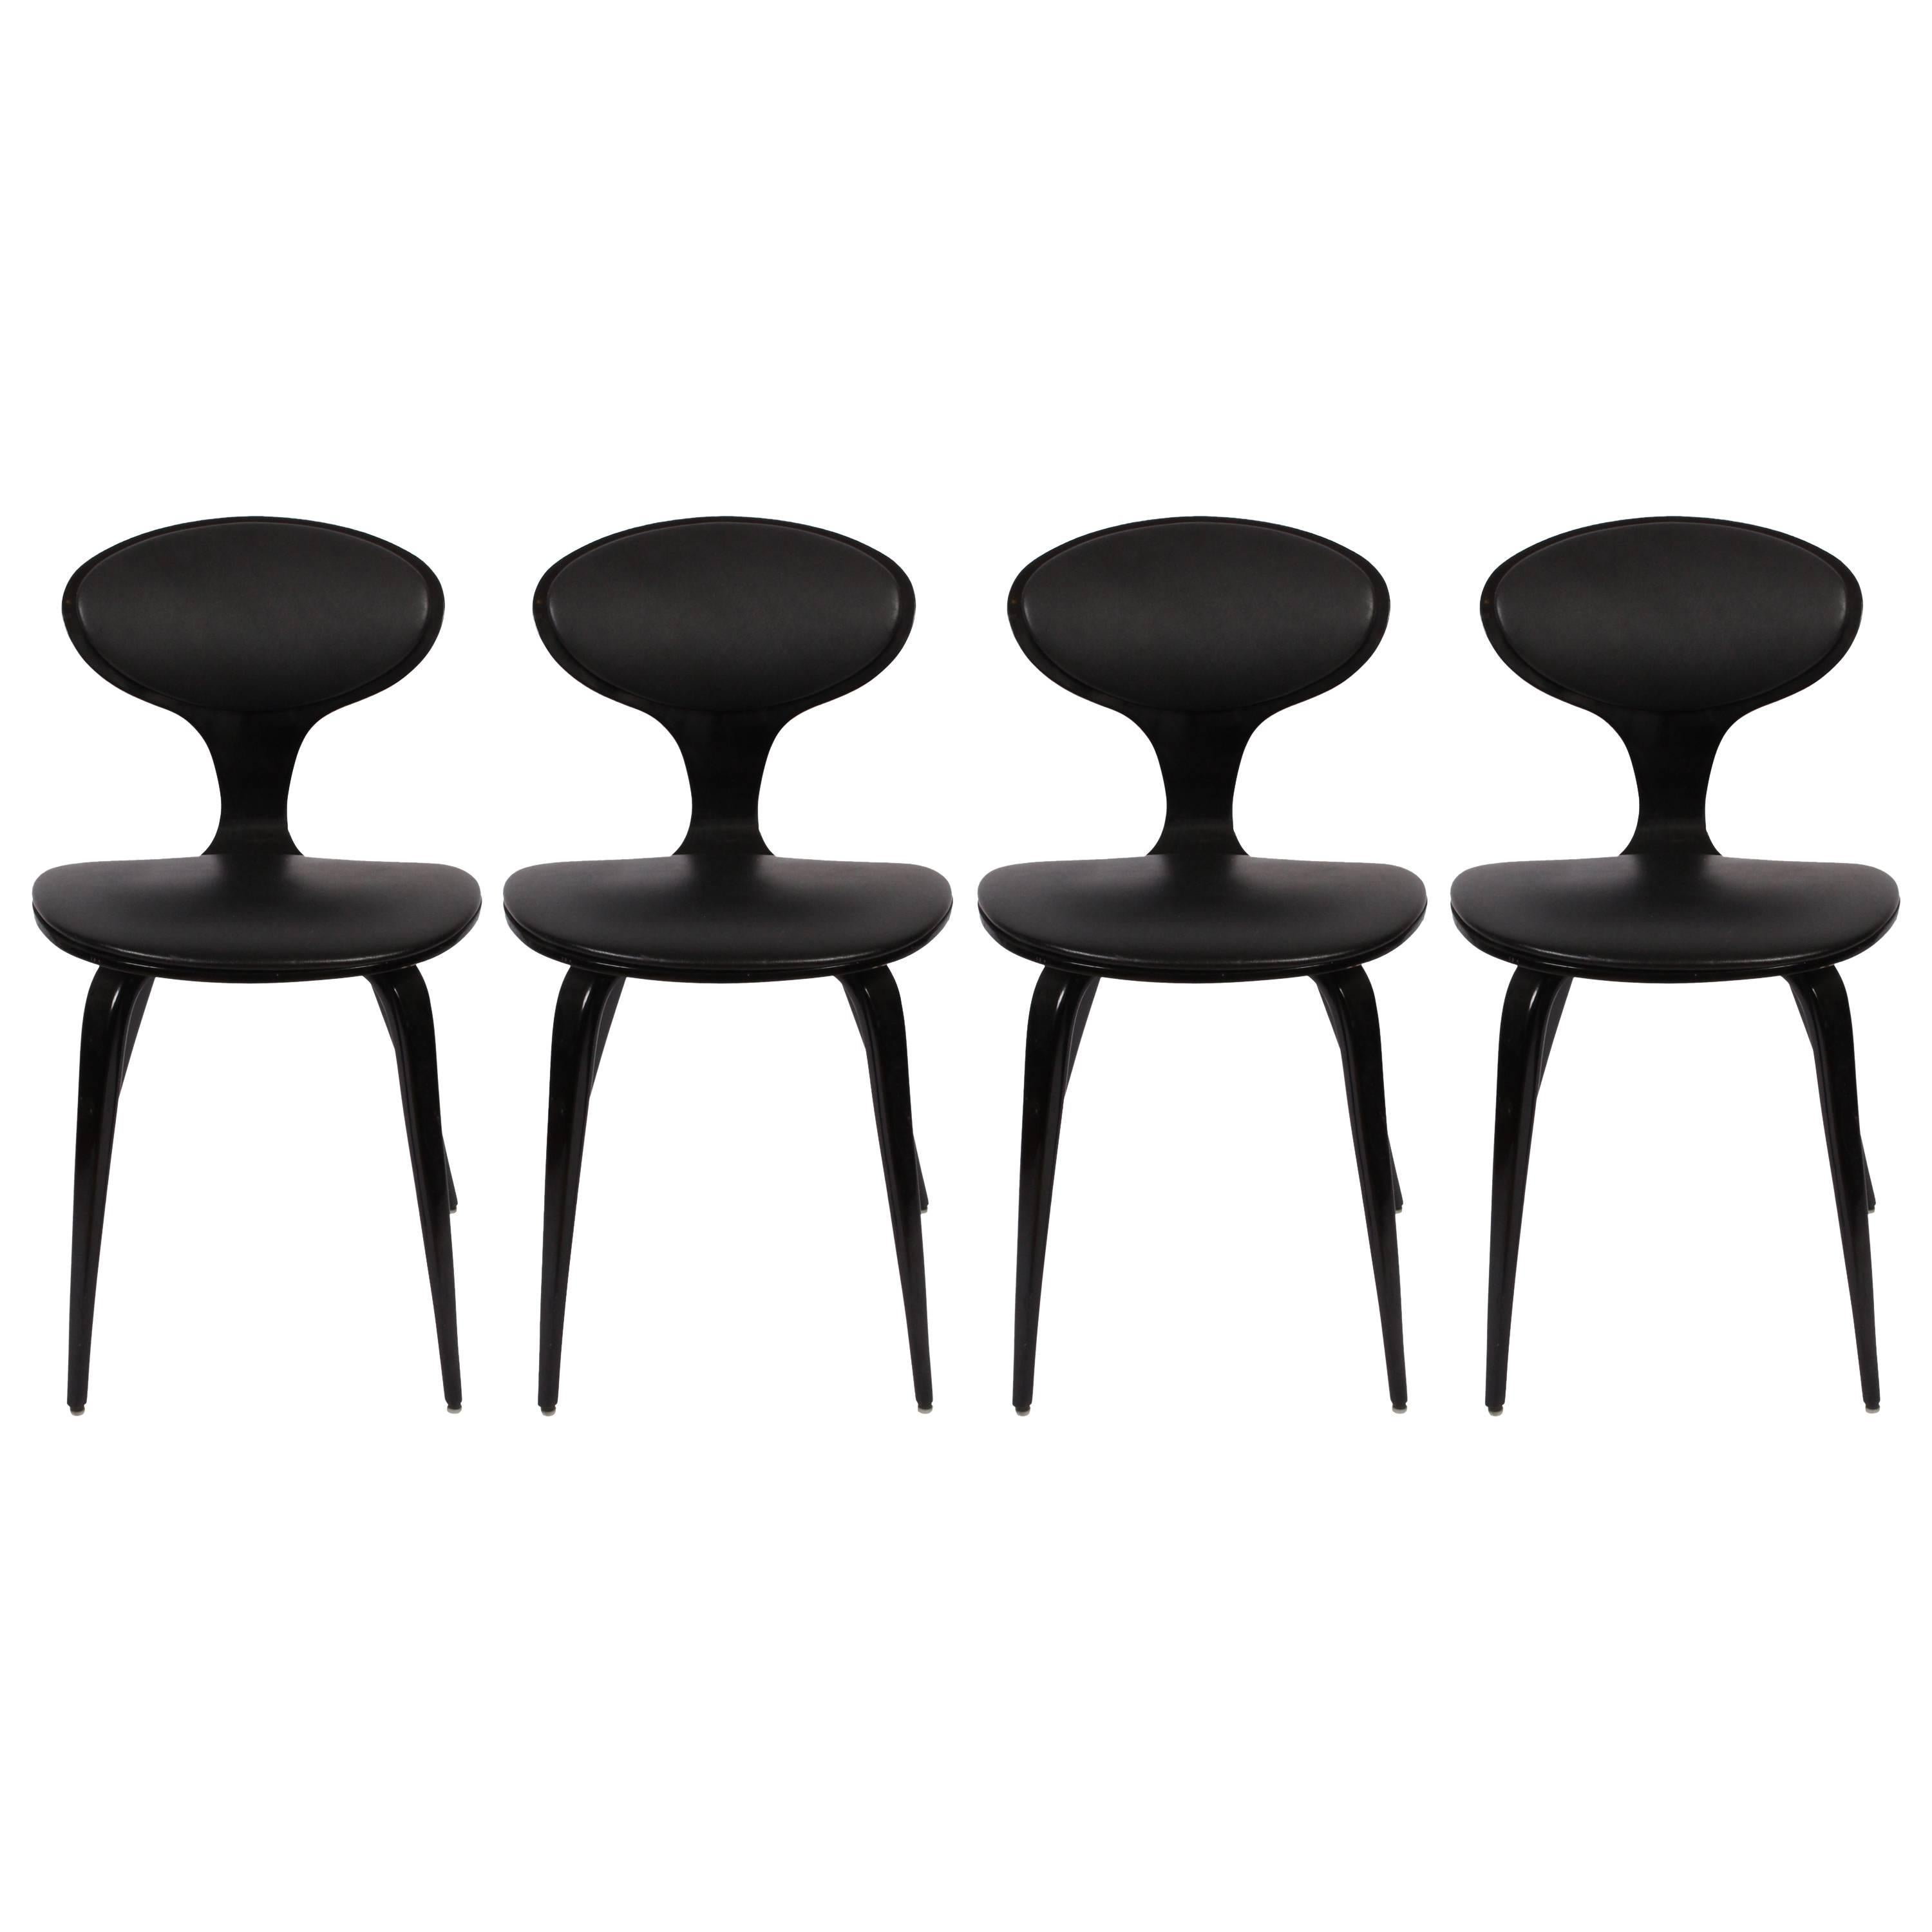 set of four norman cherner bentwood upholstered black lacquer chairs 1